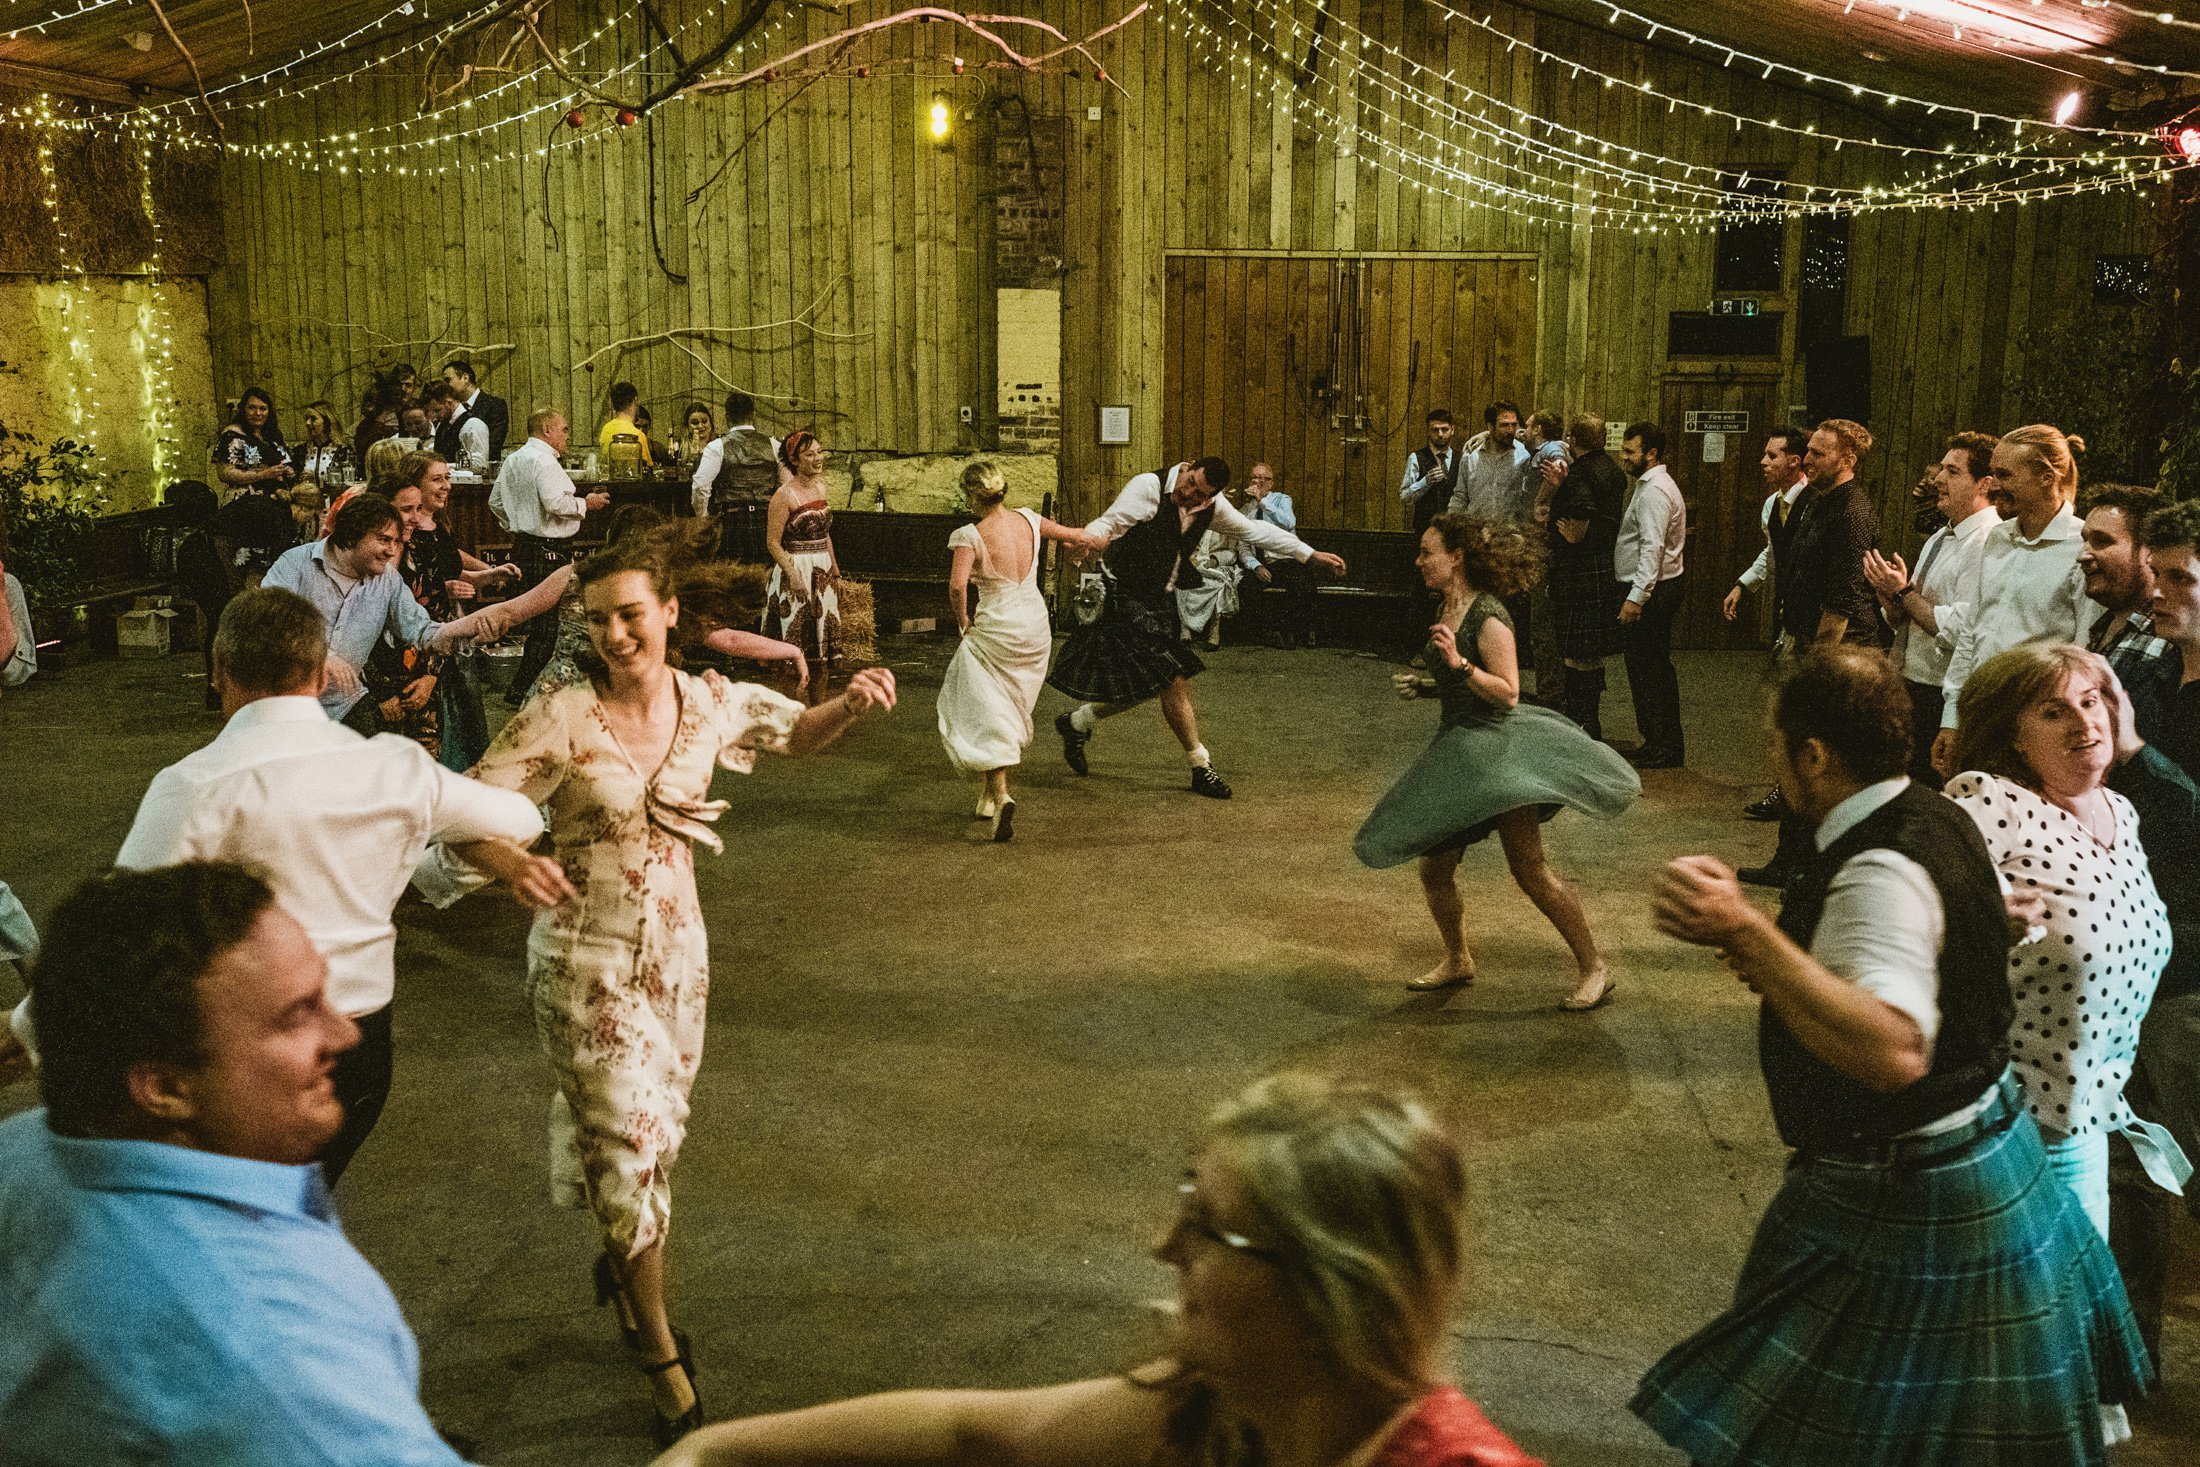 wide shot of the guests ceilidh dancing in the barn